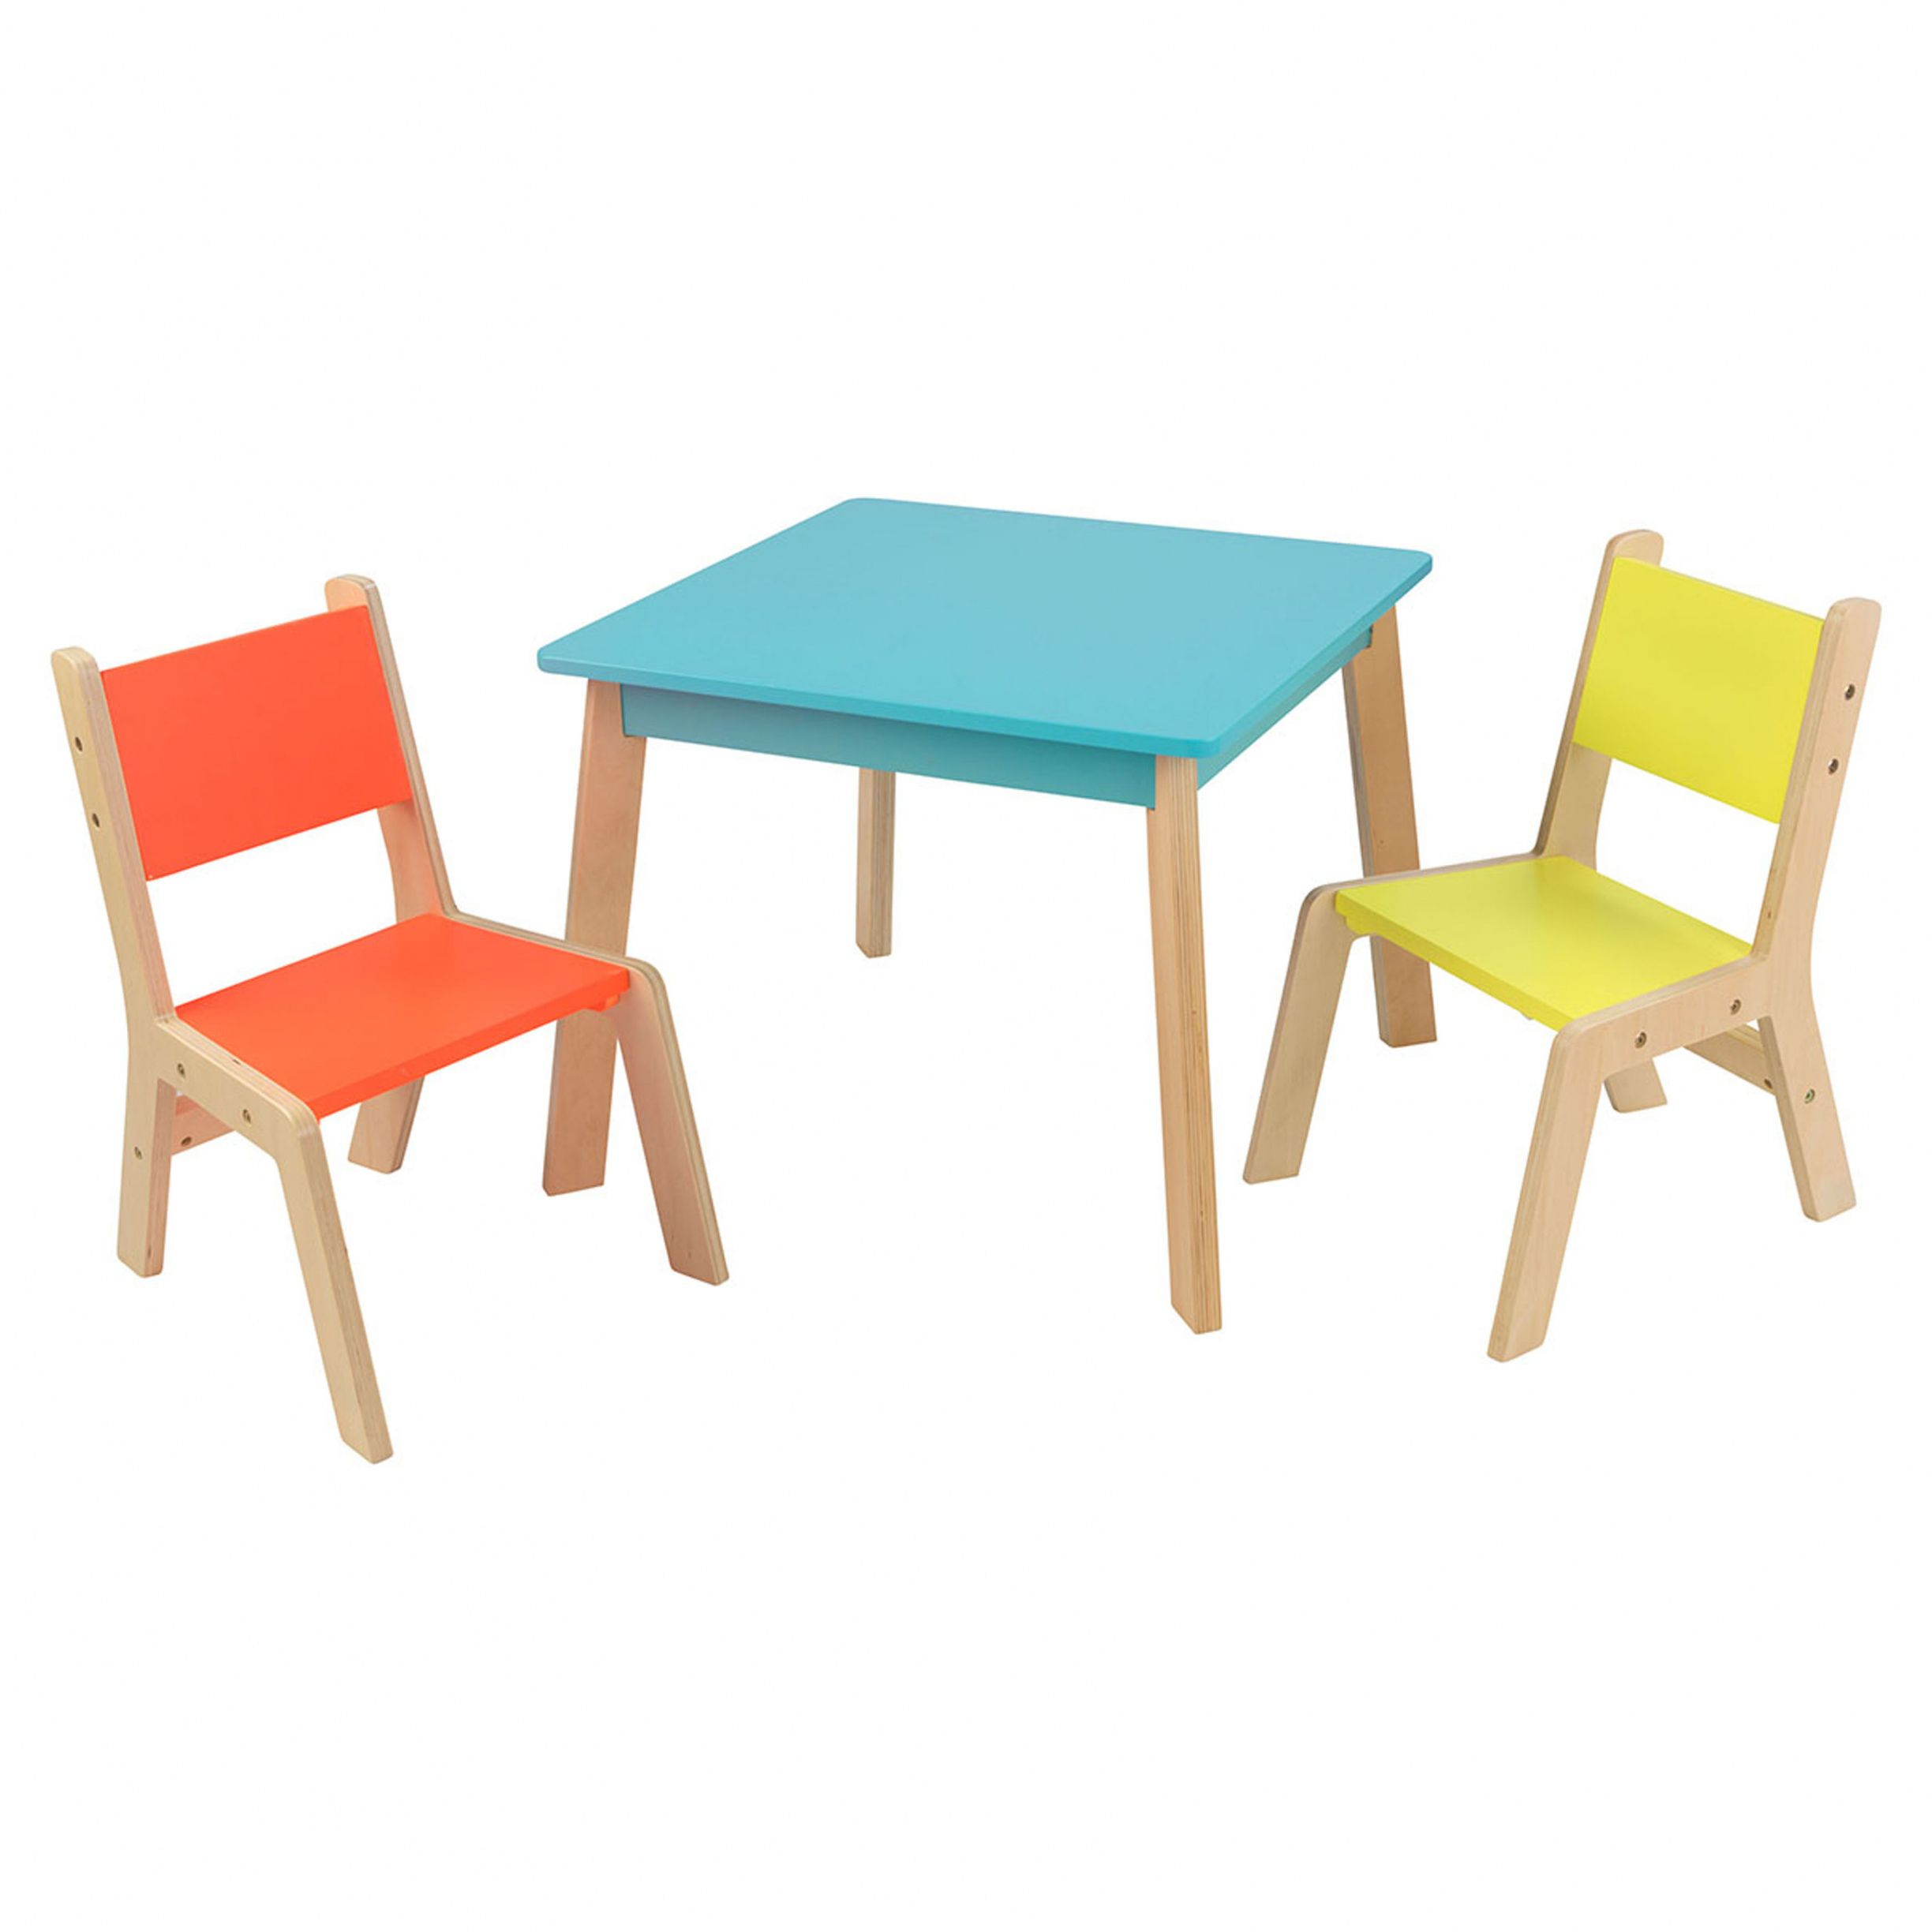 Children Desk and Chair Set Desk Wall Art Ideas Check more at http